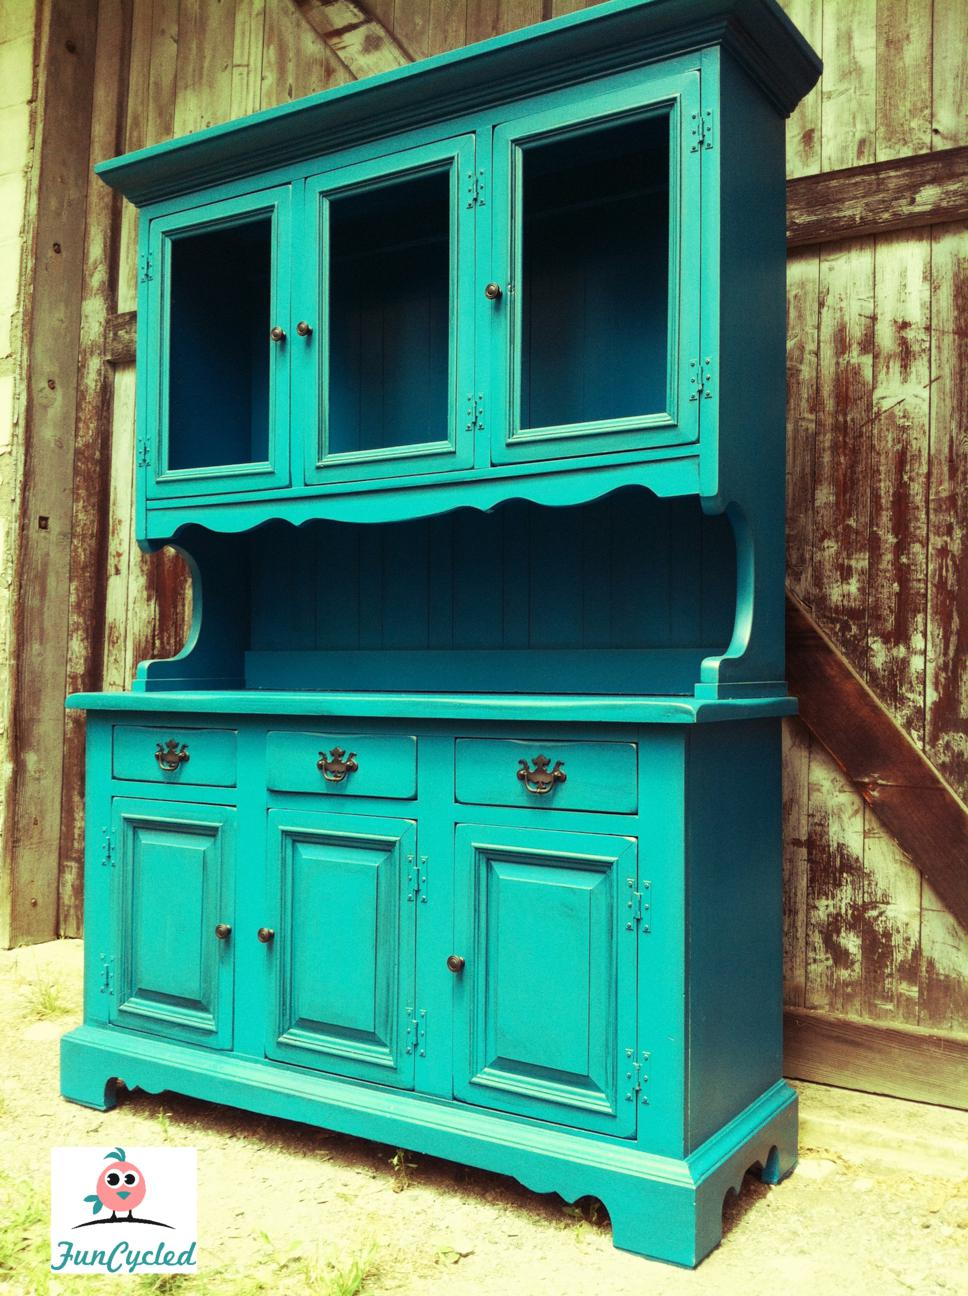 Tuesday S Treasures Vintage Teal Hutch And Red French